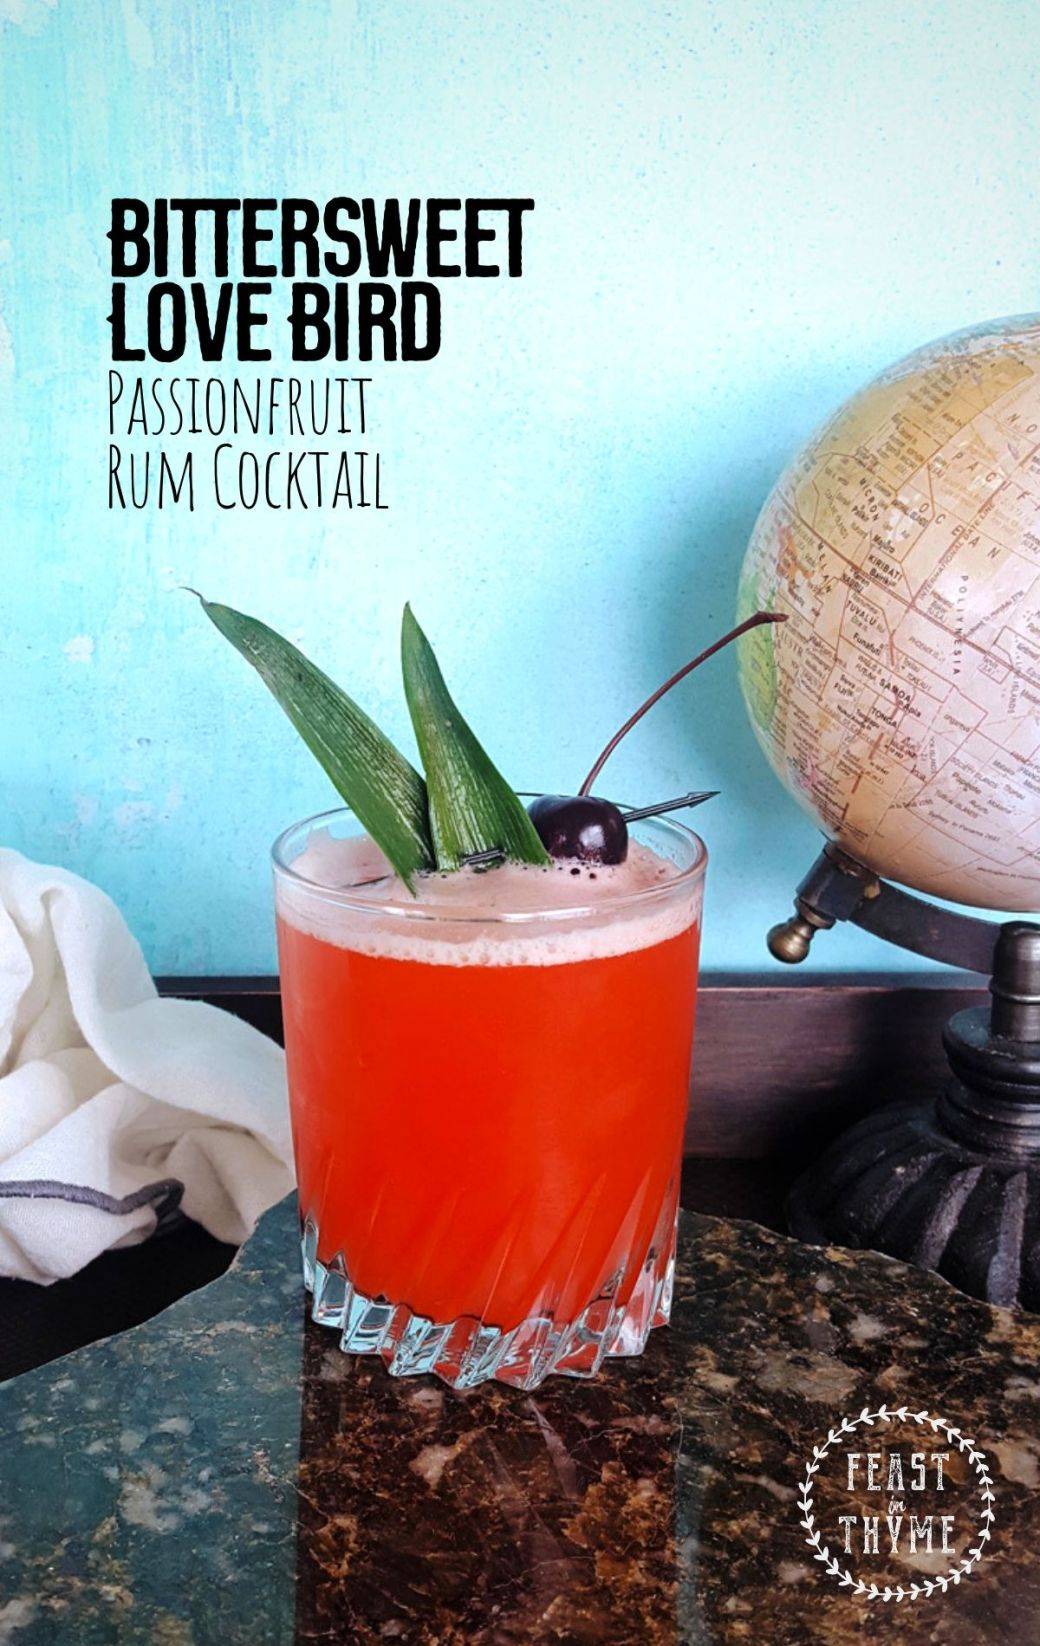 Bittersweet Love Bird | A Passion Fruit Rum Cocktail